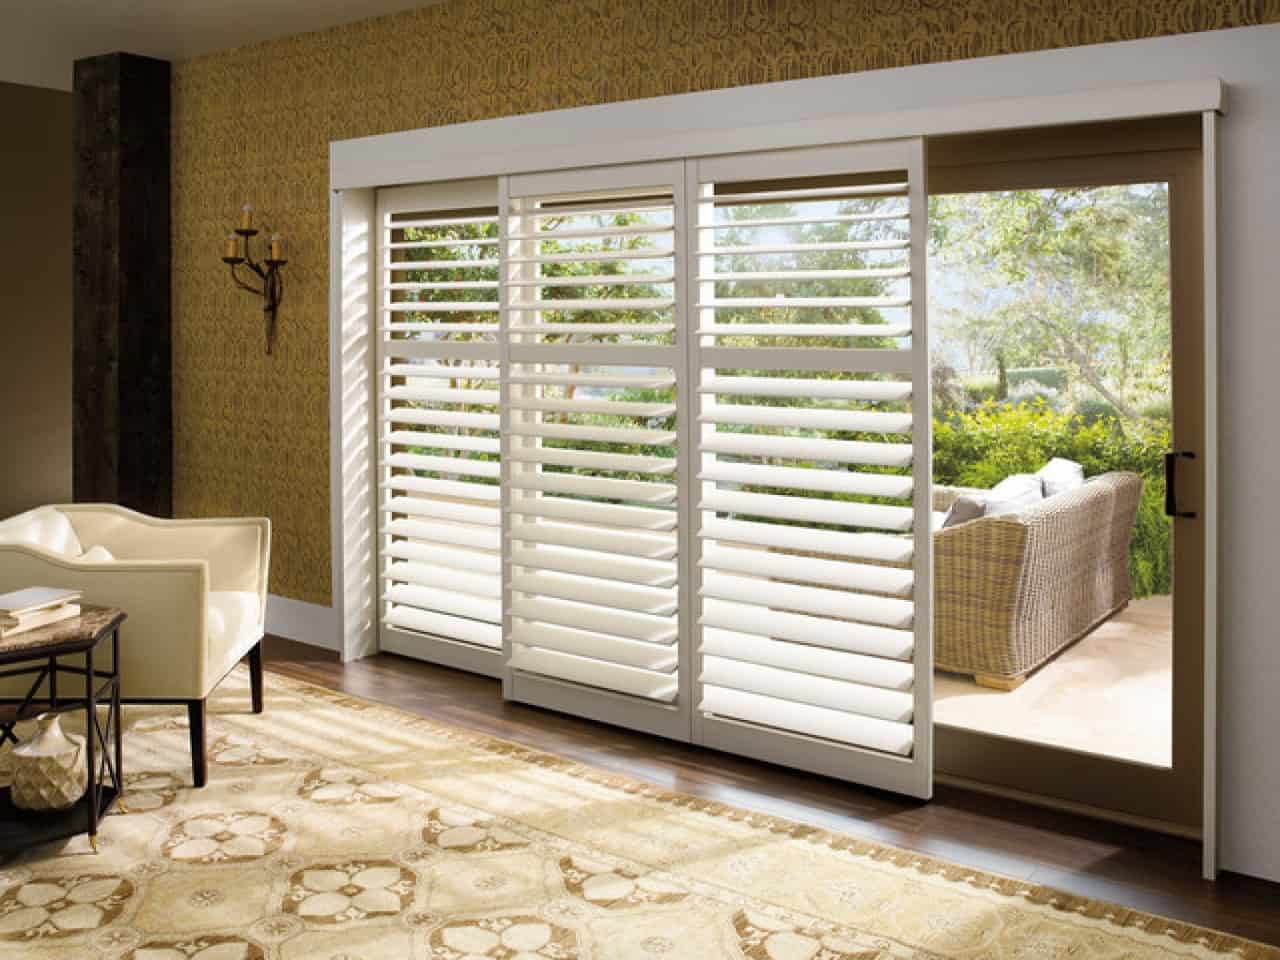 door doors vertical light window white sliding blinds glass with treatments for premier filtering tips ideas